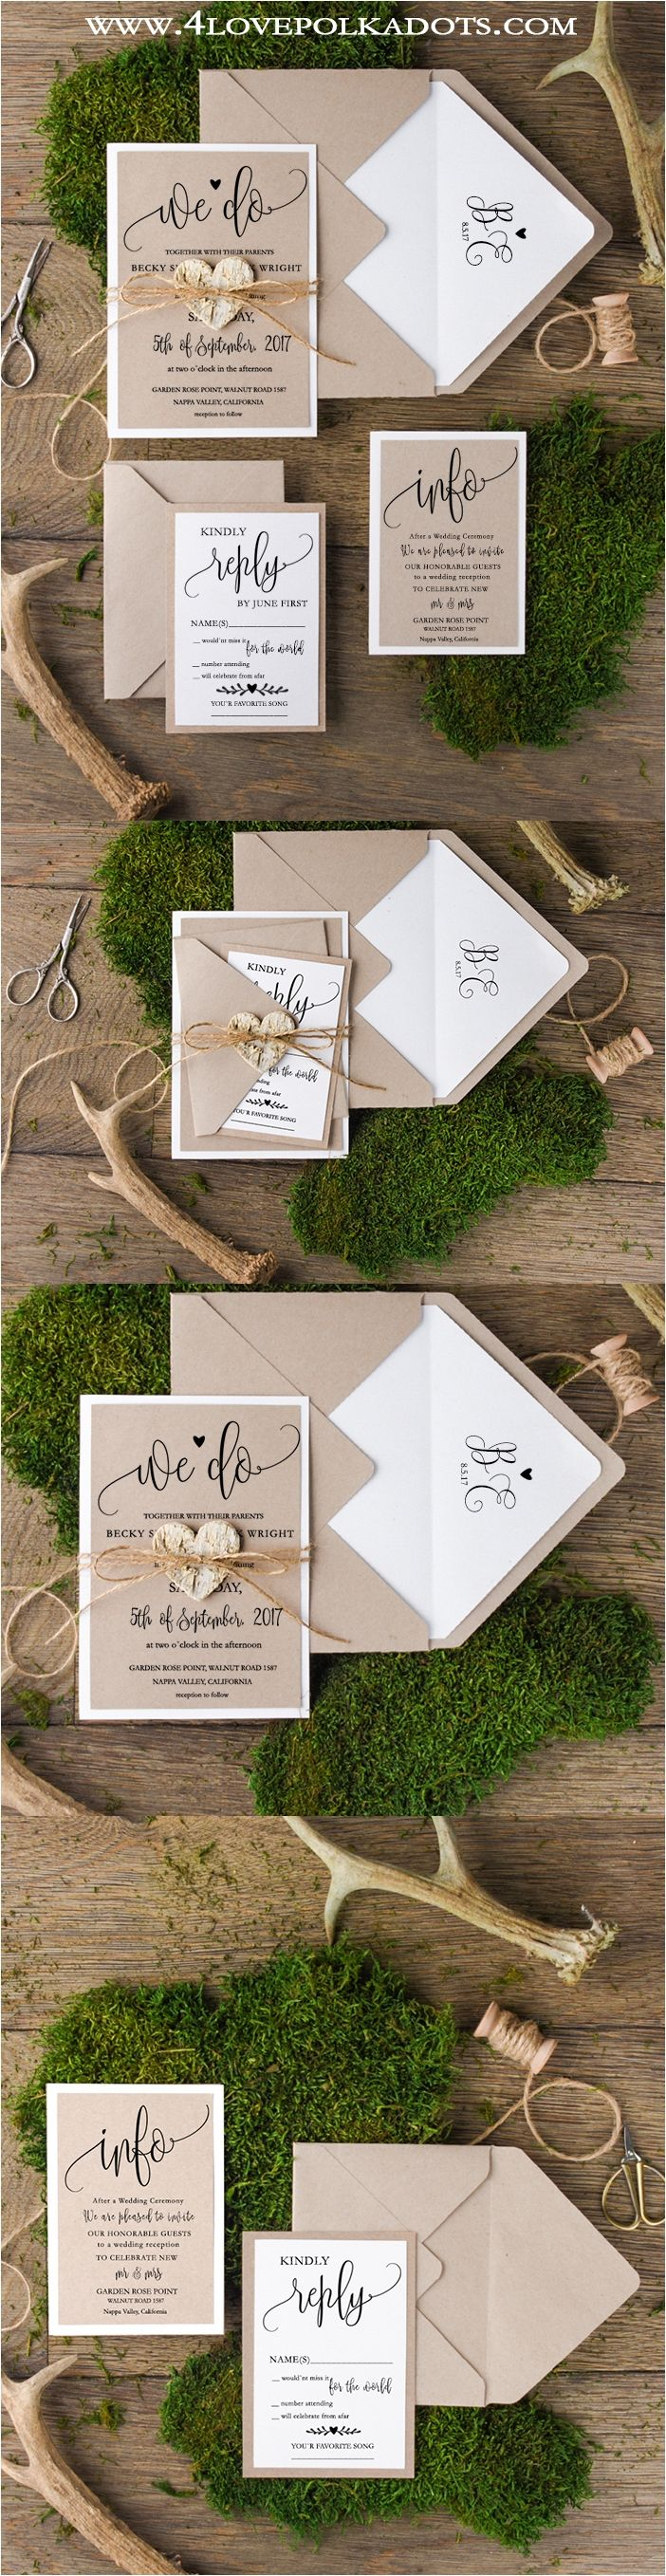 wedding shower invitations omaha%0A Rustic Wedding Invitation Inspiration For Your Rustic Wedding